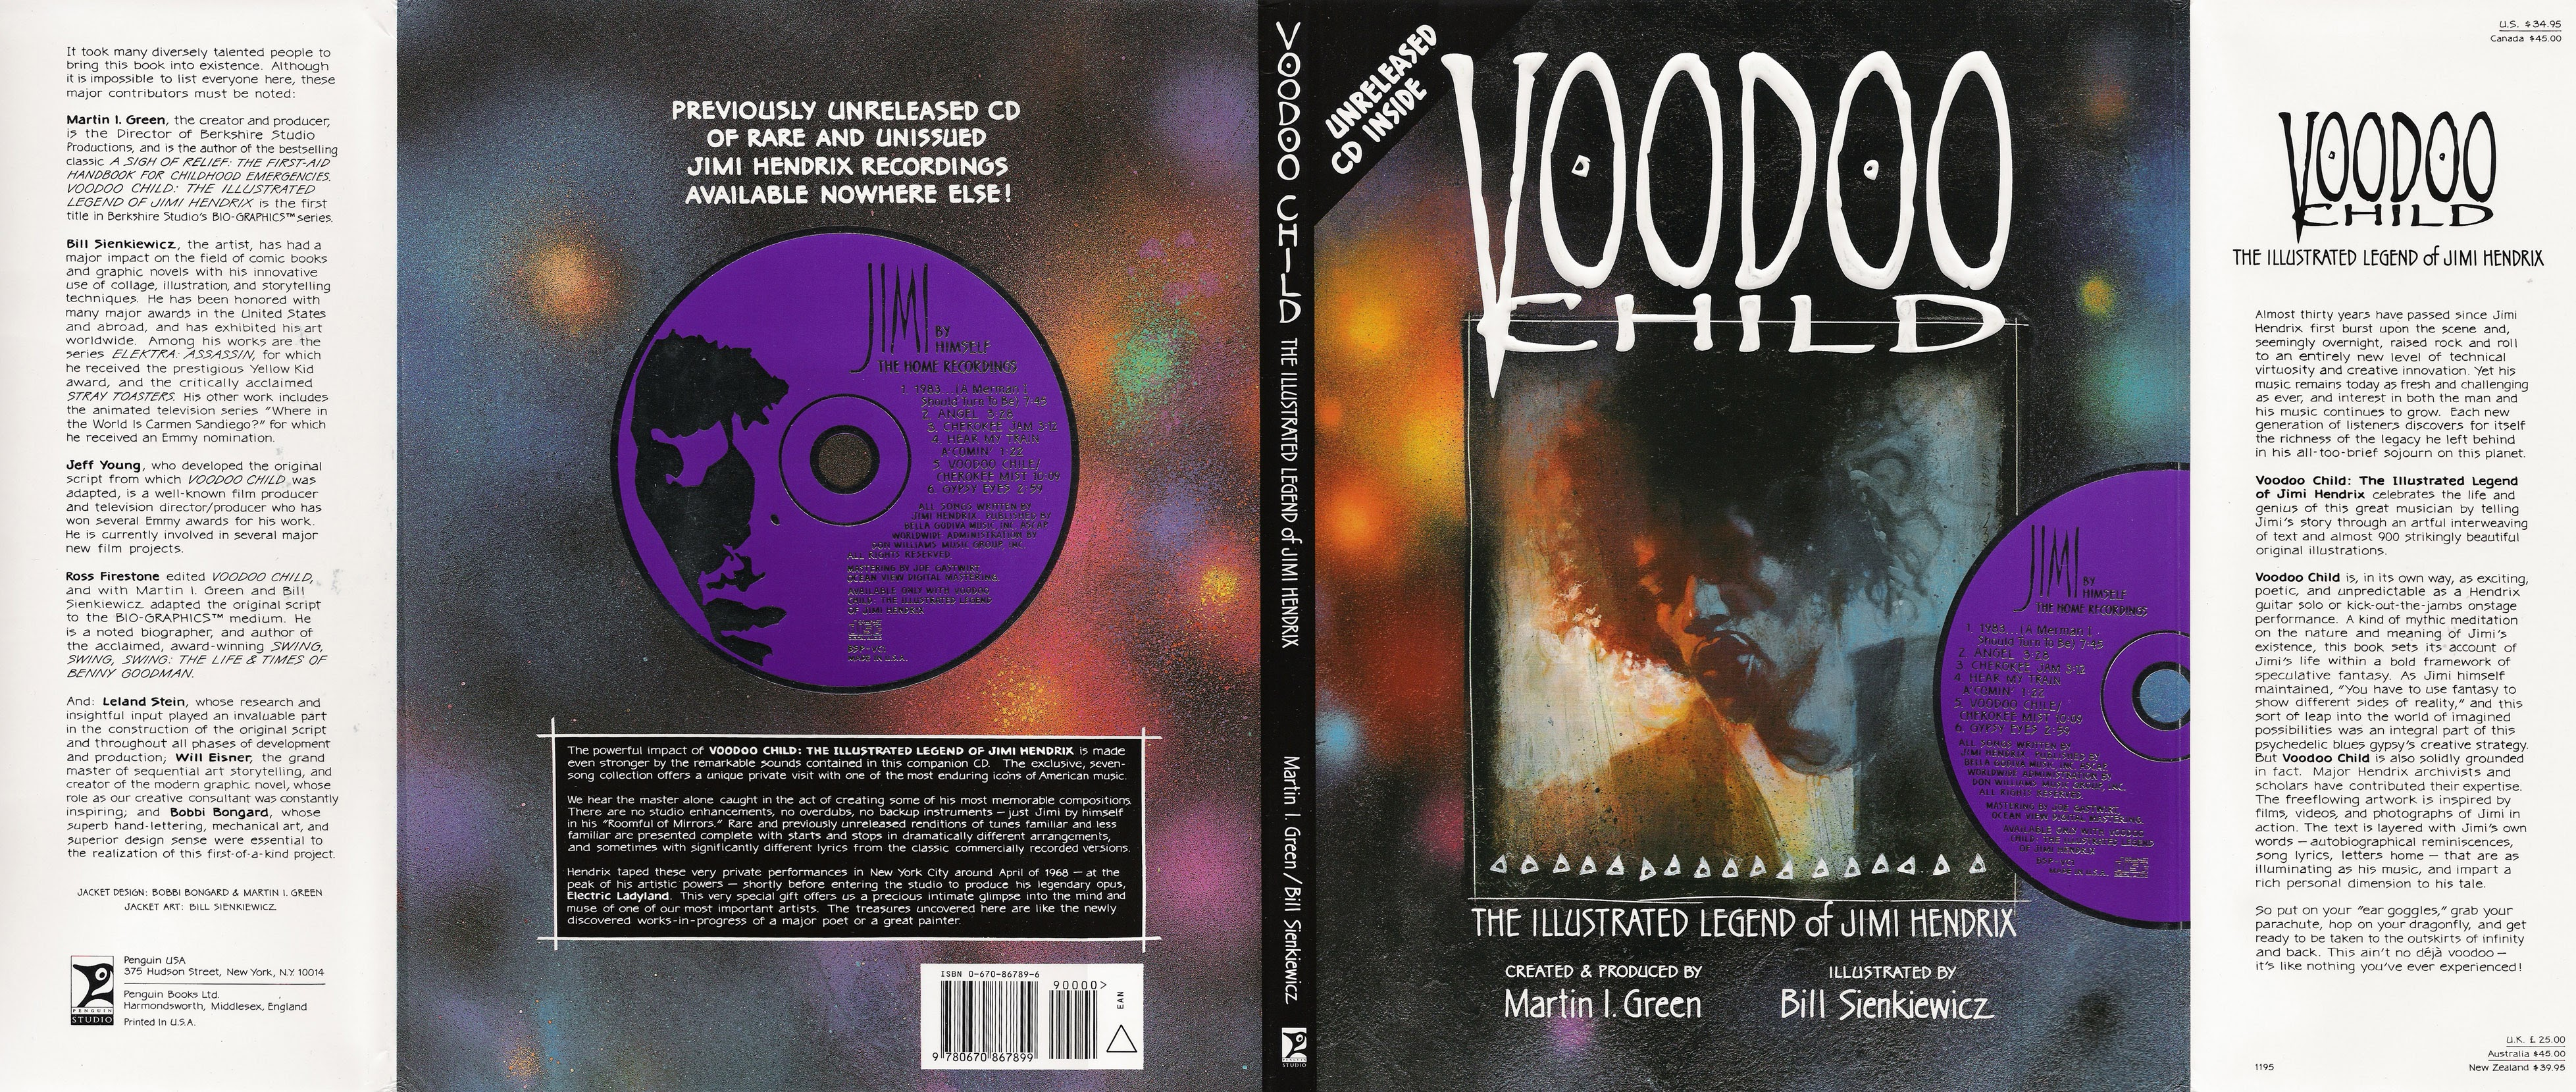 Voodoo Child - The Illustrated Legend of Jimi Hendrix TPB Page 1